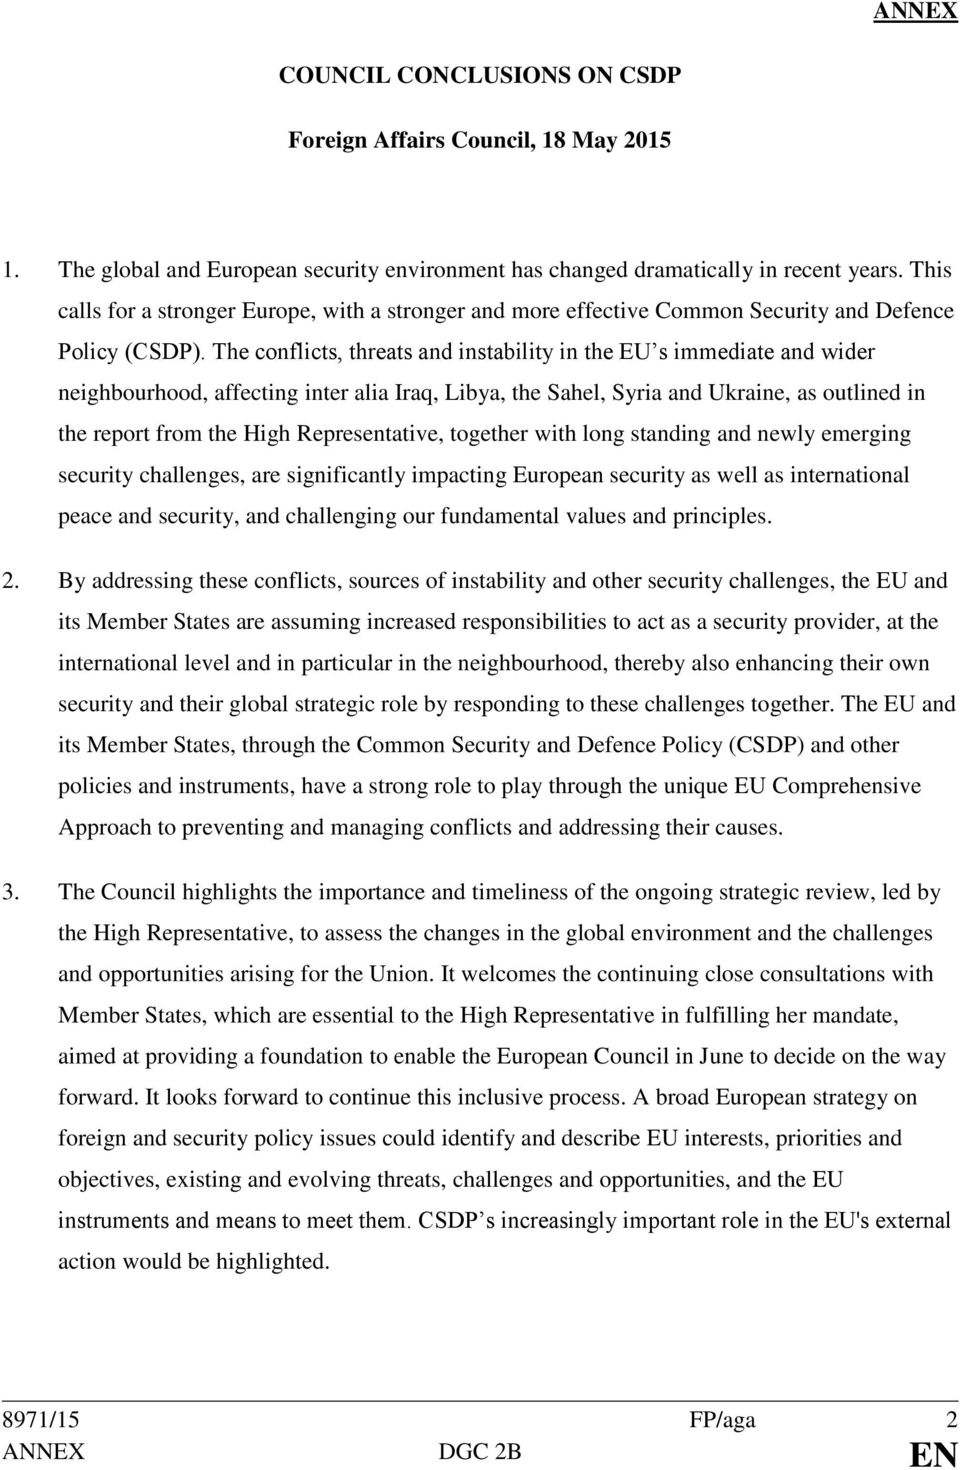 The conflicts, threats and instability in the EU s immediate and wider neighbourhood, affecting inter alia Iraq, Libya, the Sahel, Syria and Ukraine, as outlined in the report from the High